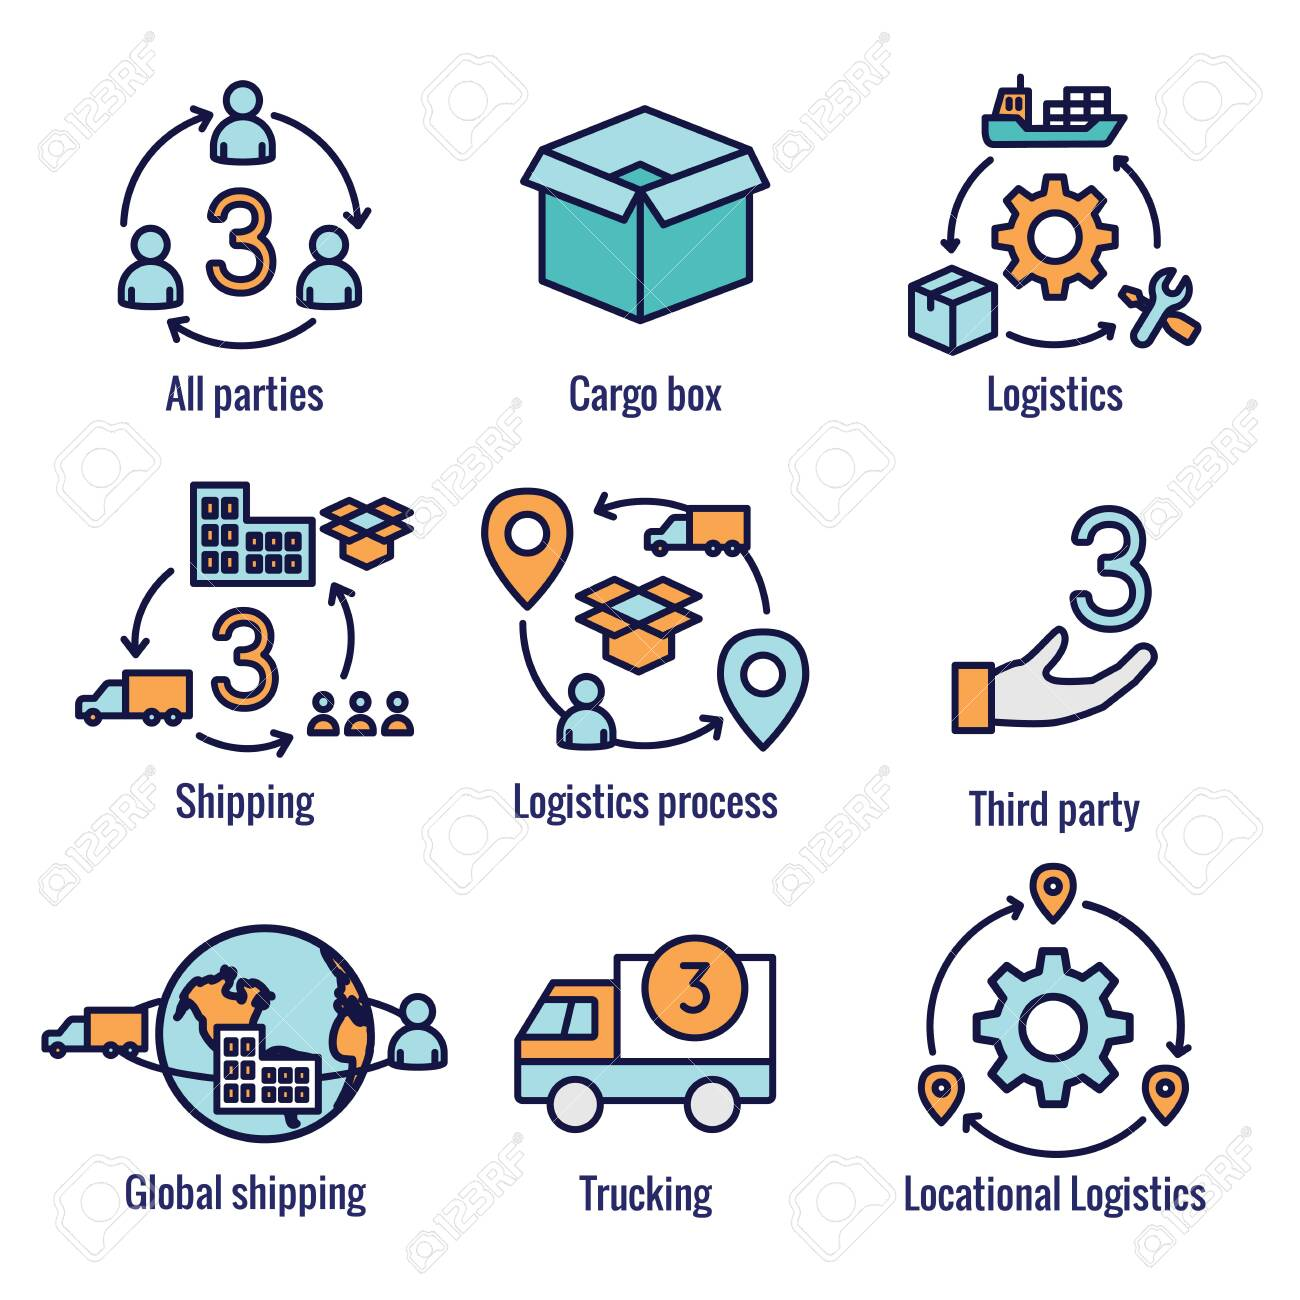 Logistics icon set w buildings, trucking, people and shipping box - 132035104